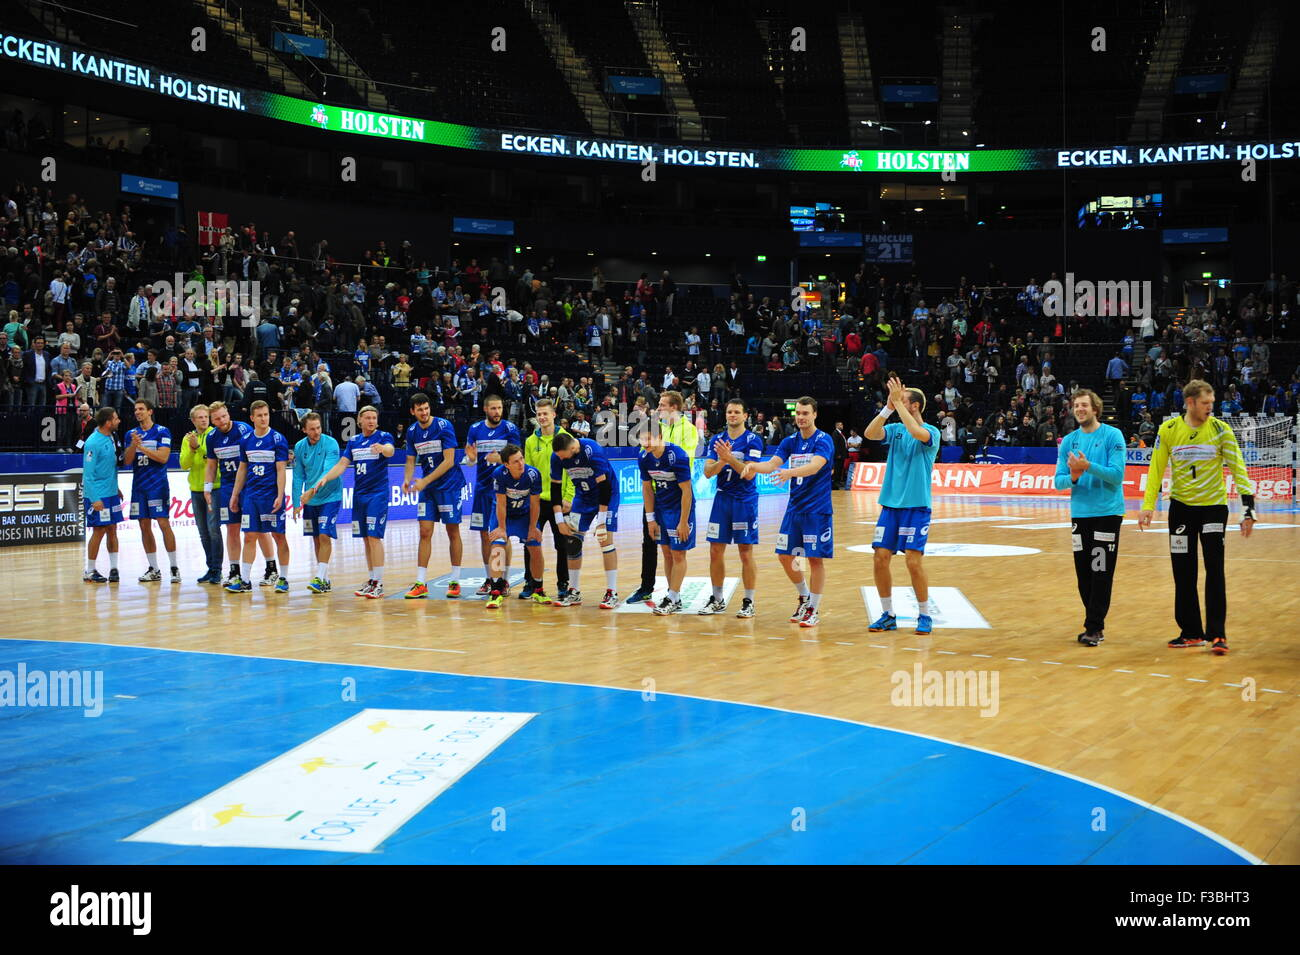 HSV Handball Team after the match against THSV Eisenach (37:23), Barclaycard Arena, Hamburg, Germany. Editorial - Stock Image